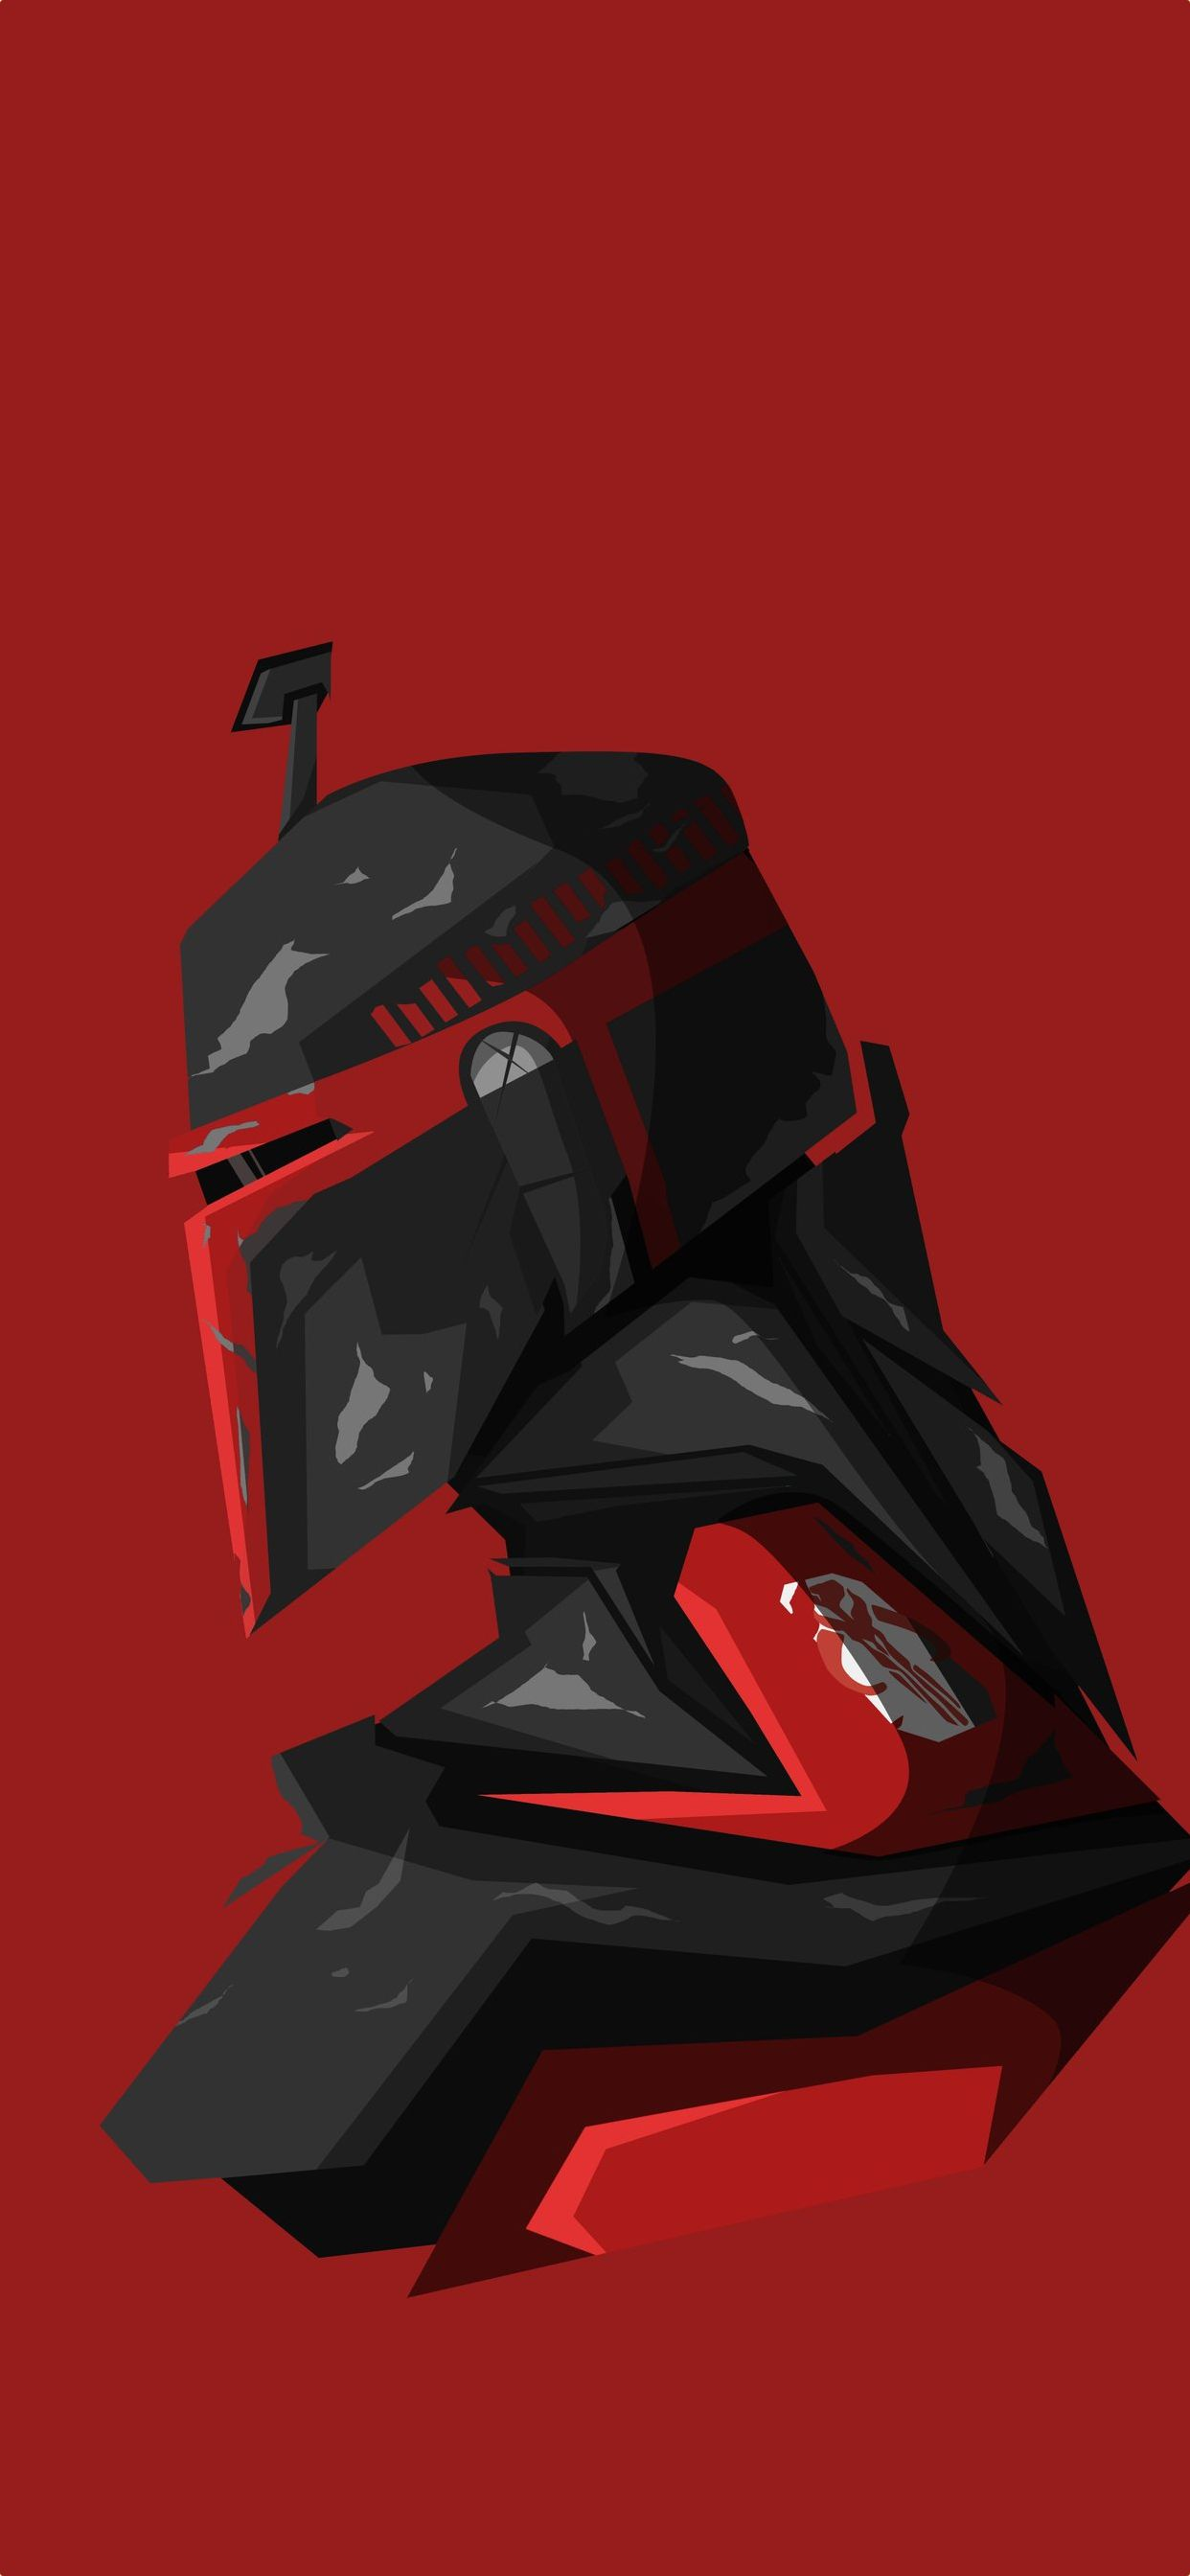 1242x2688 The Mandalorian iPhone wallpapers